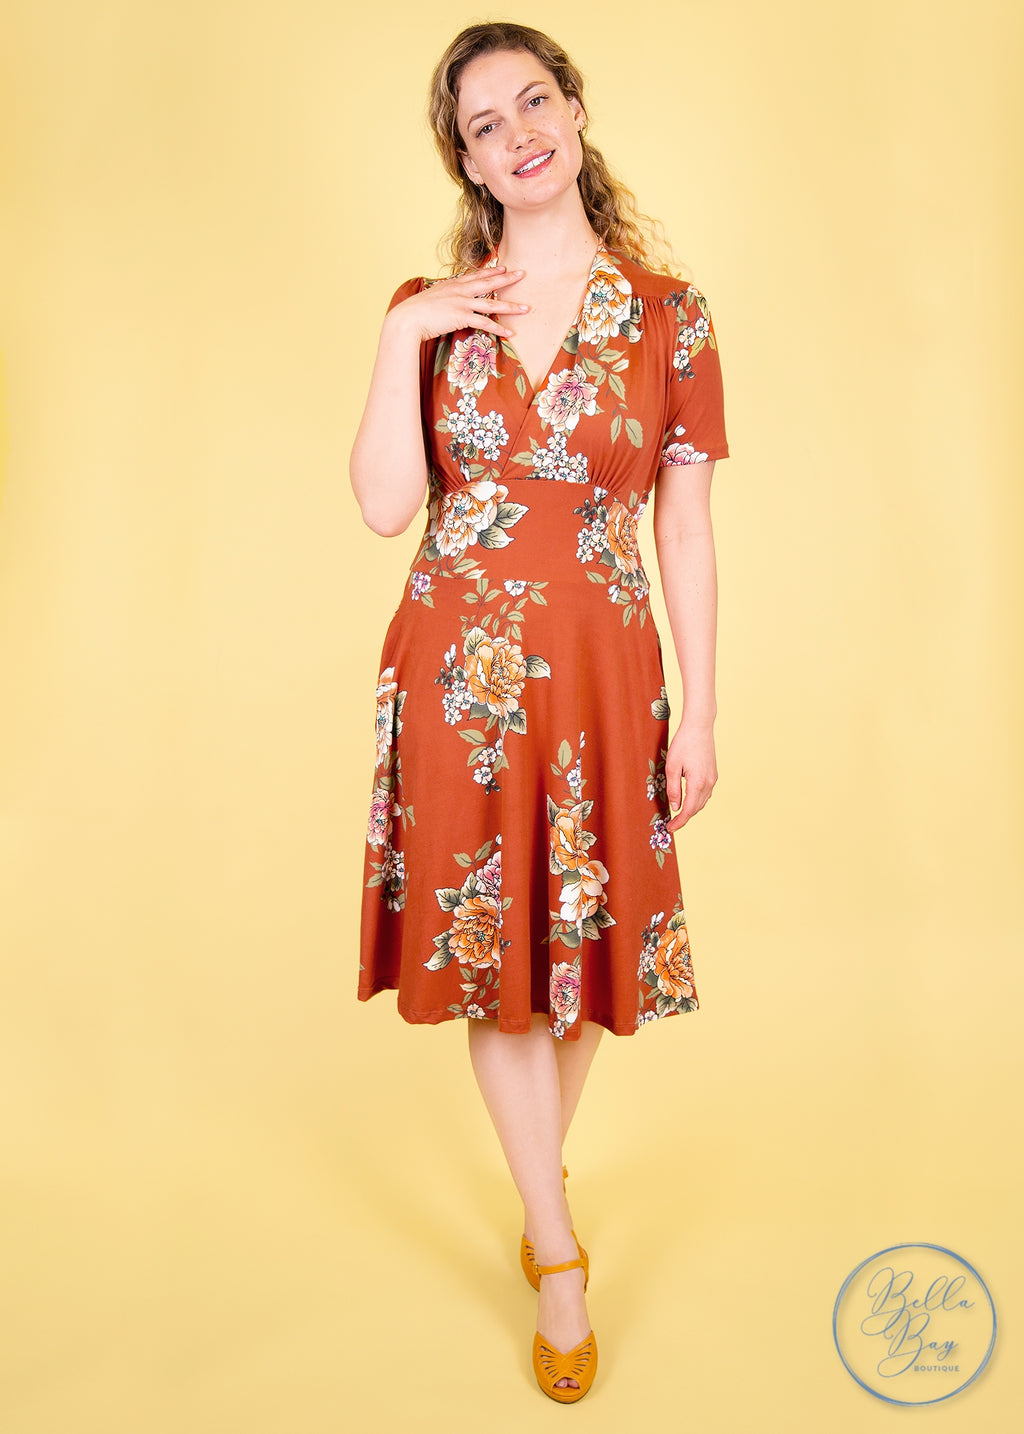 Paisley Raye Dahlia Dress- Rust Floral (XL) - Paisley Raye with Bella Bay Boutique, shop now at  https://shopbellabay.com/ or locally in Newport Oregon